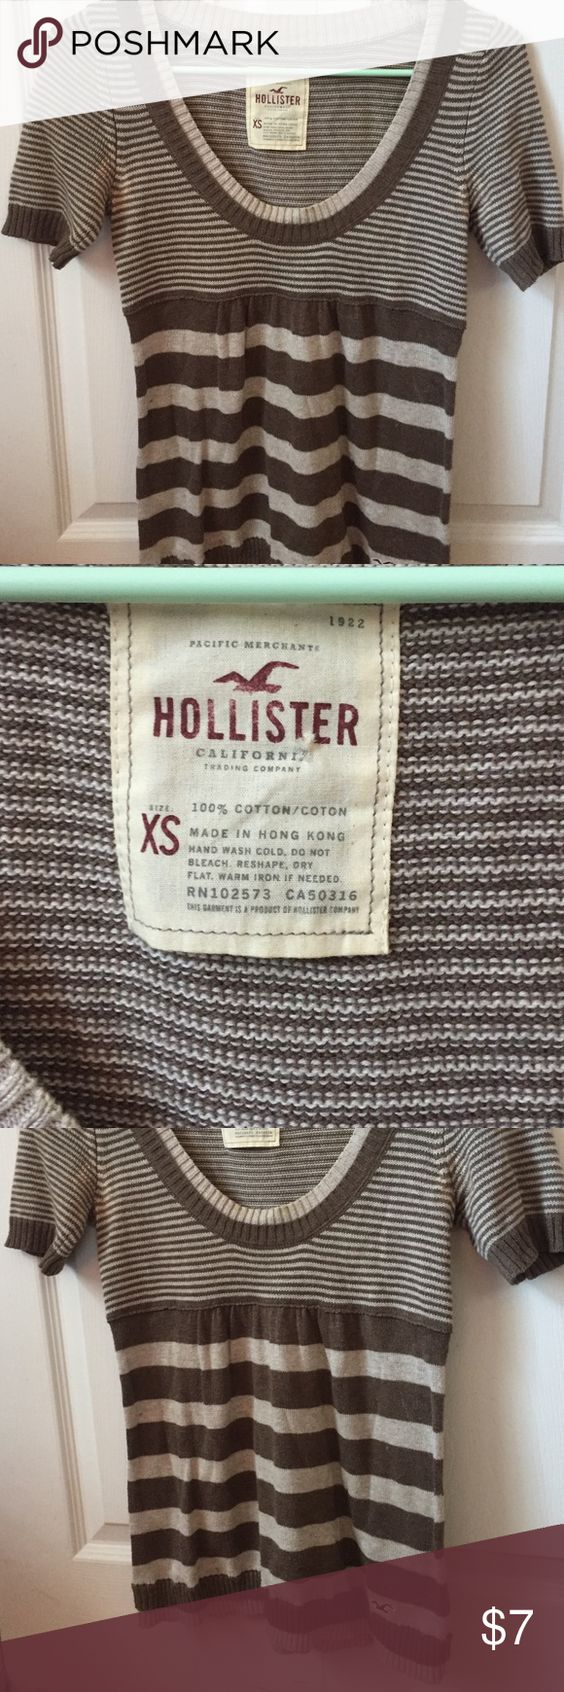 ✨ Hollister Top ✨ Super cute top in great condition! Hollister Tops